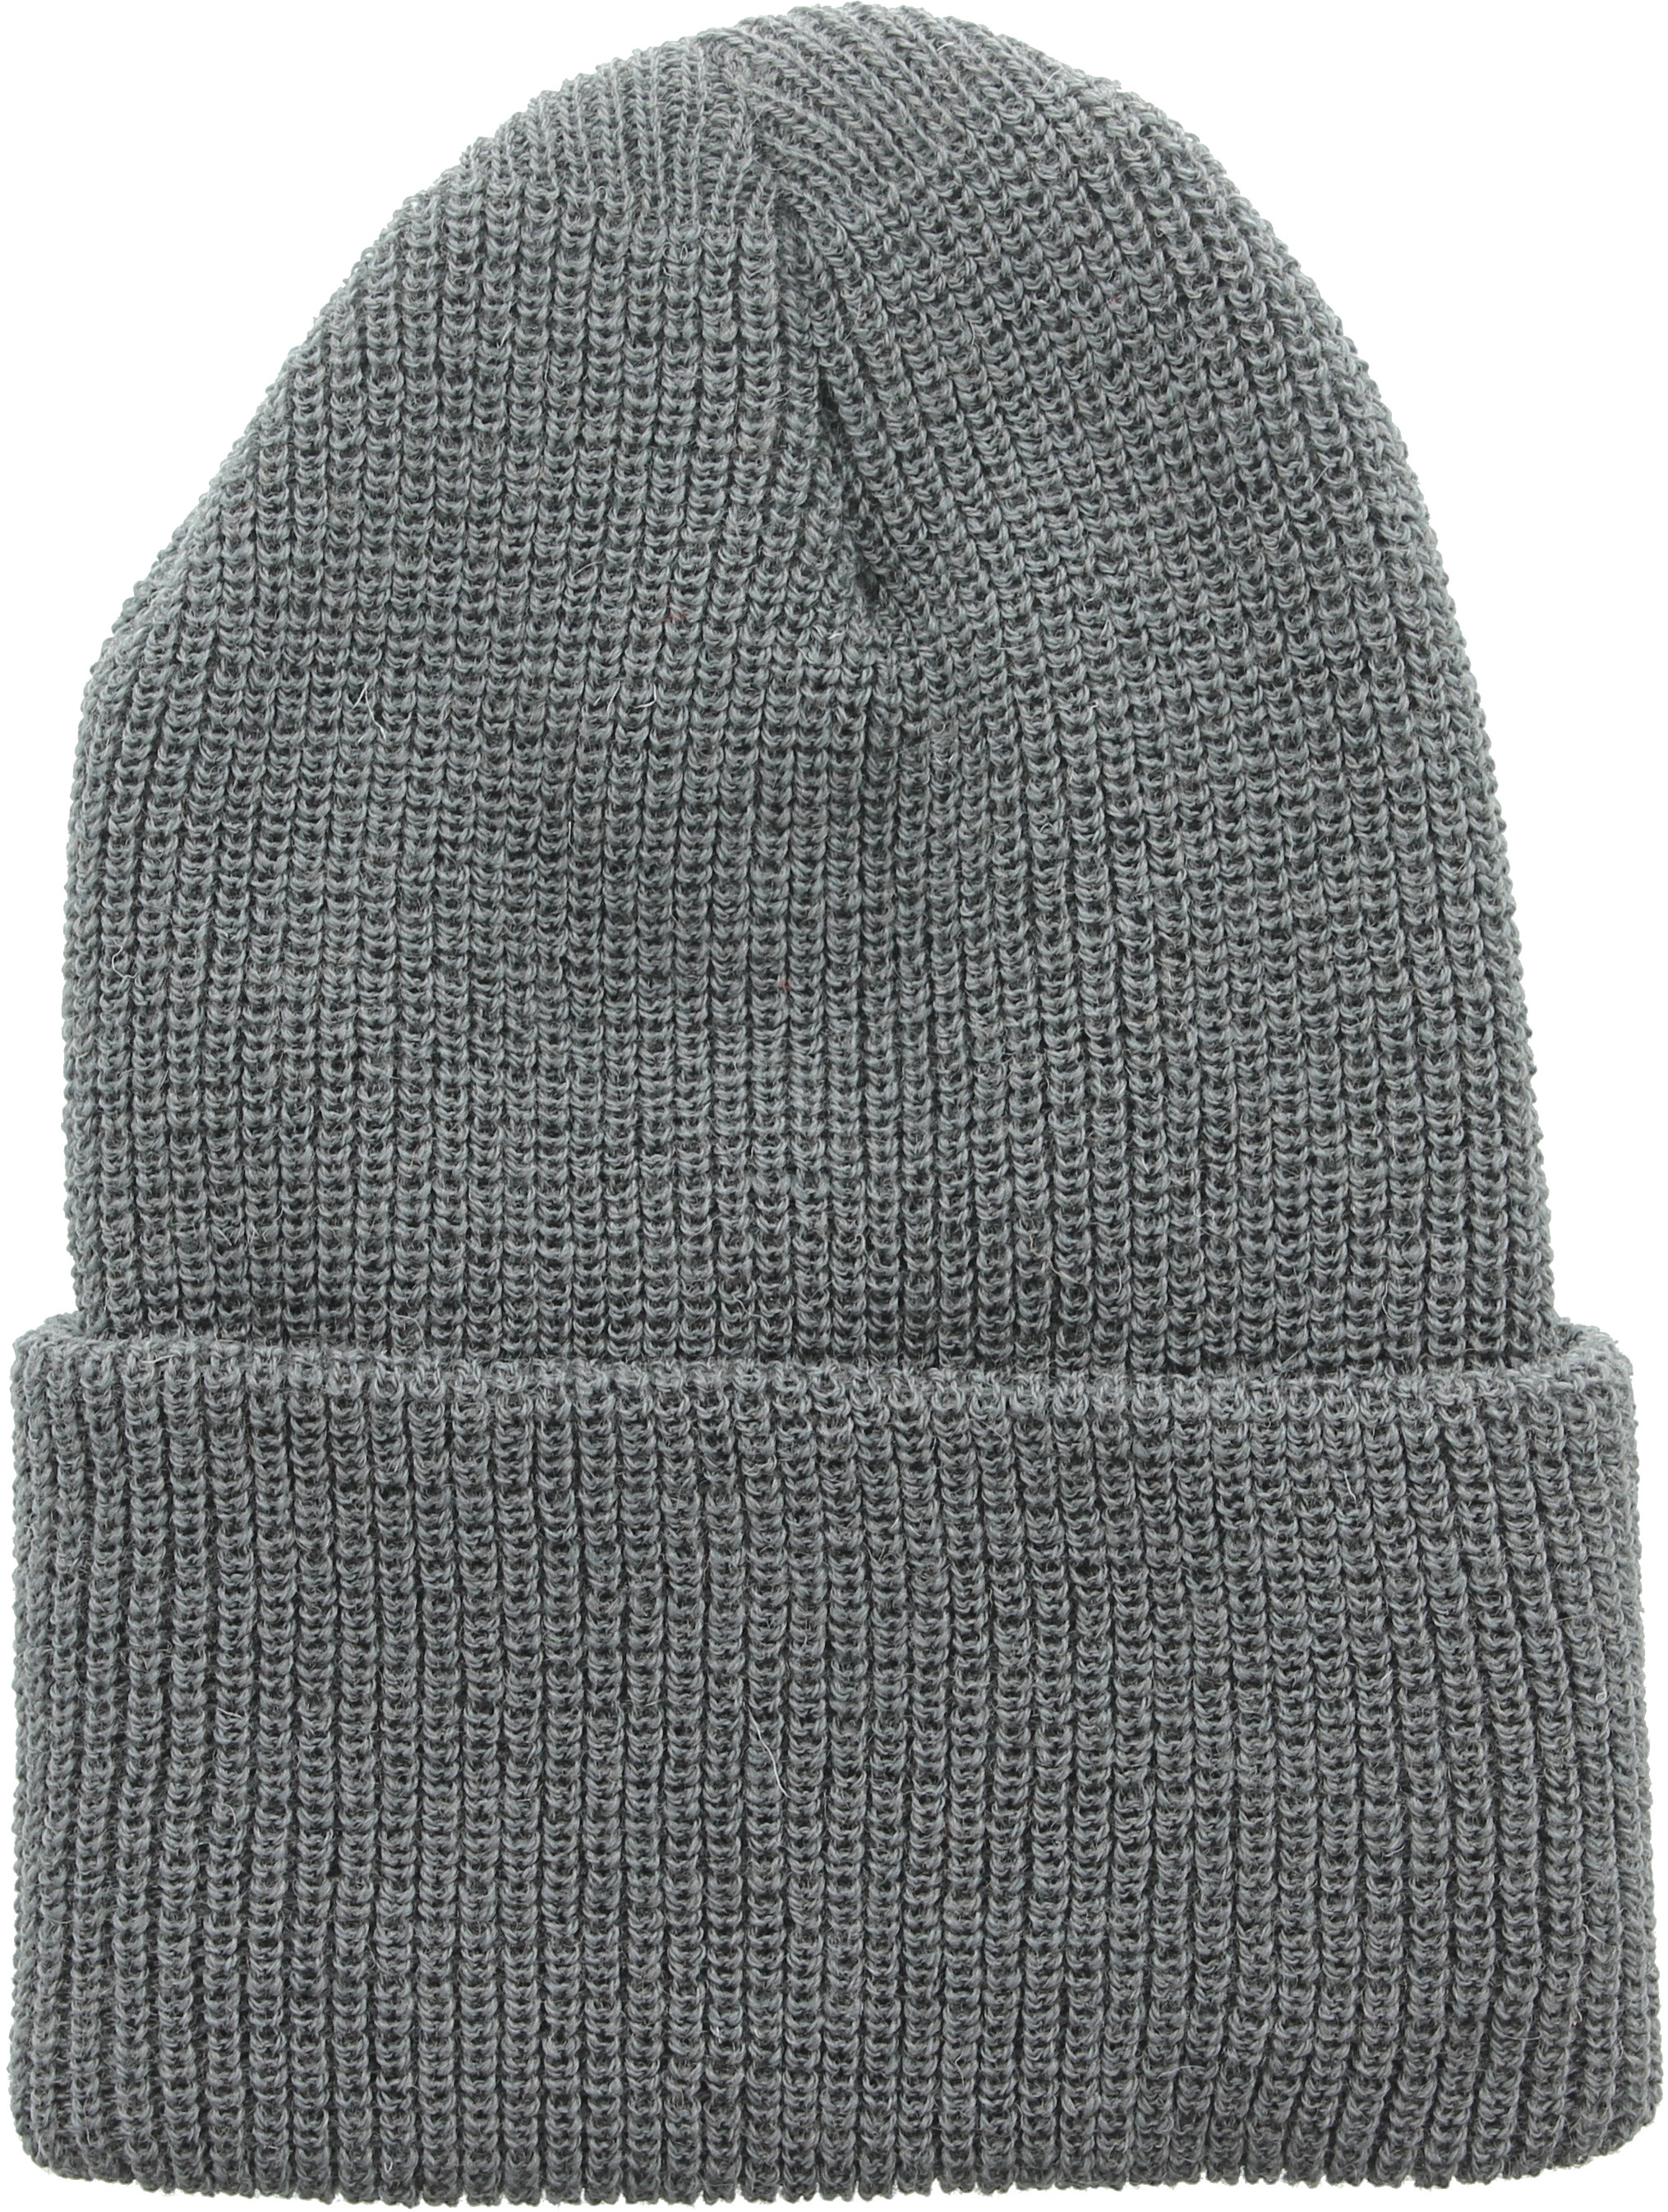 Heavyweight Worsted Wool Thick Ribbed Watch Cap Hat USA Made fc5539dff0d